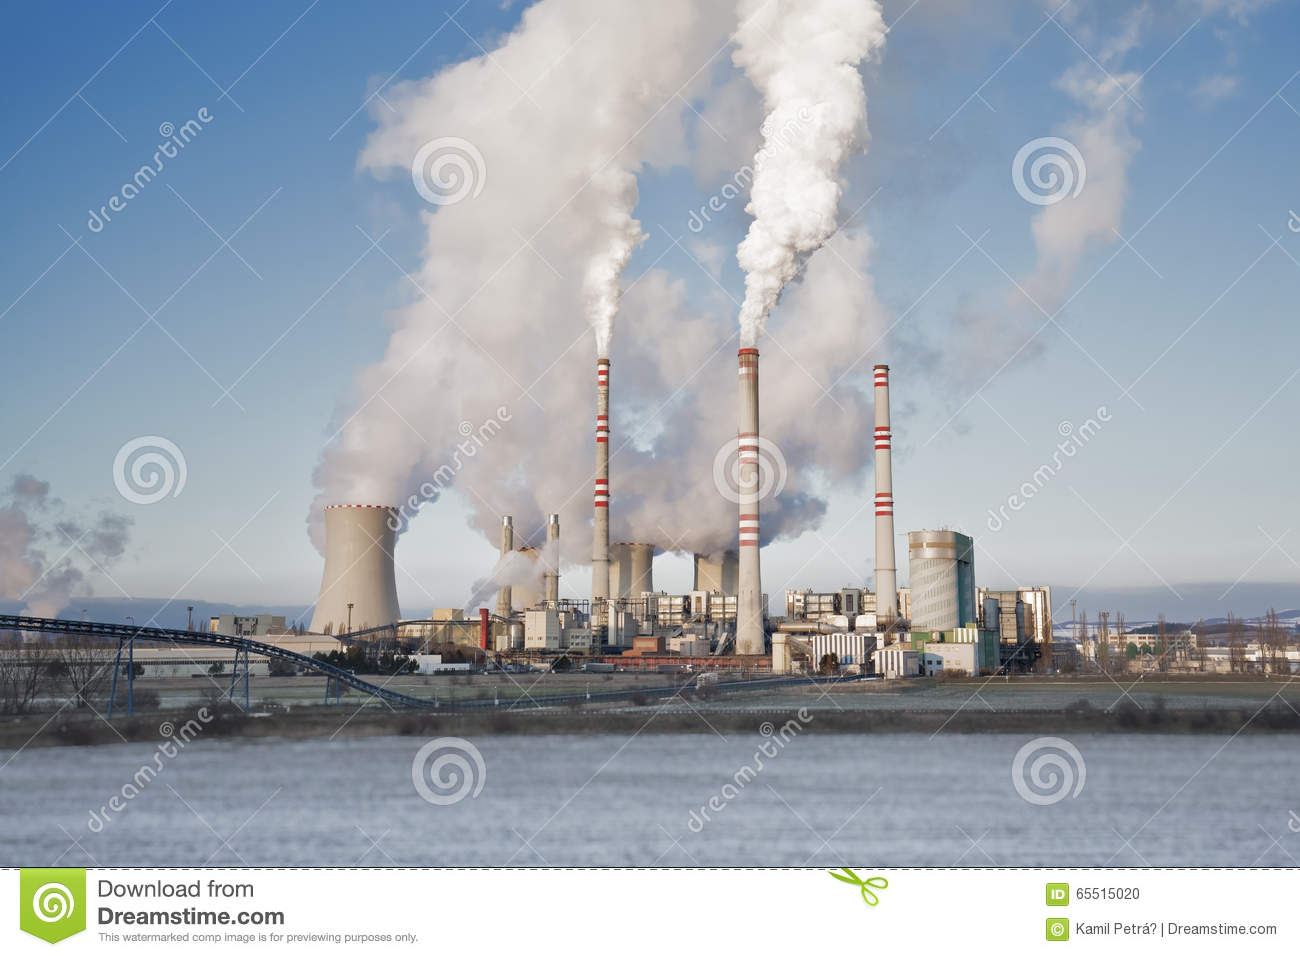 coal-fired power plant essay The coal fired thermal power plant susceptible to a wide range of hazards in its various operational areas hazard identification and risk.